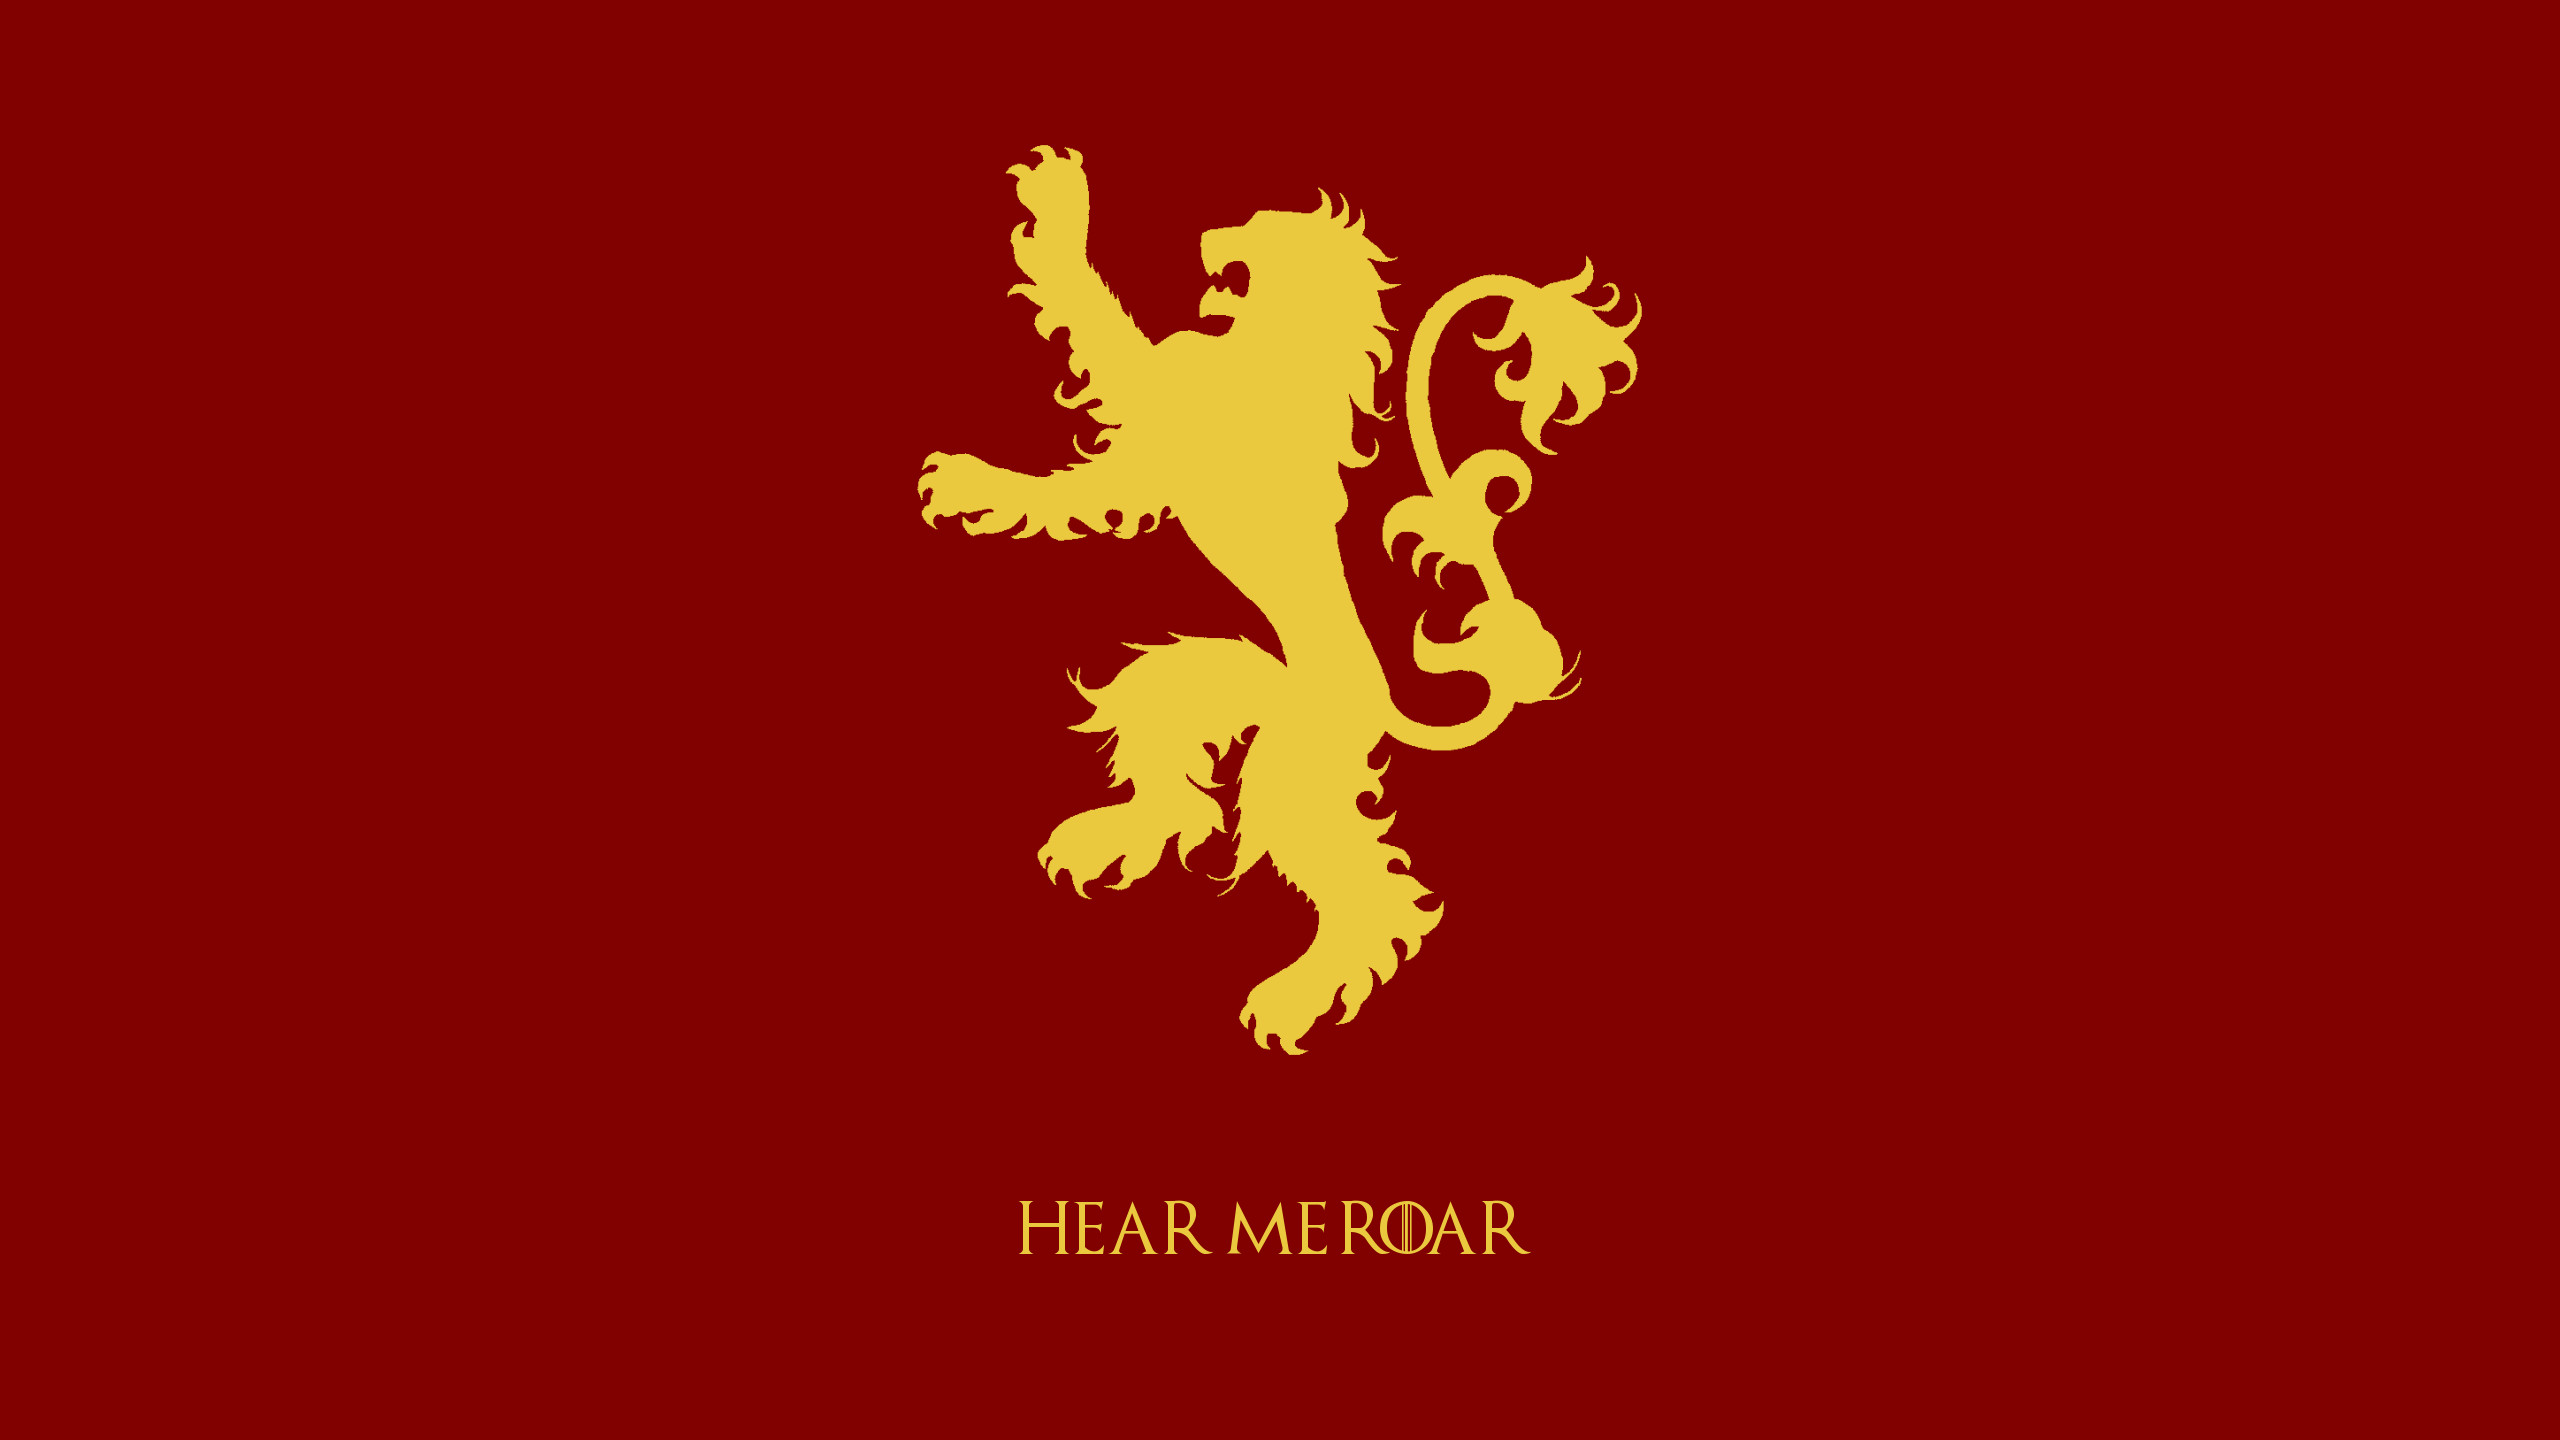 Game of Thrones Wallpapers – House Sigils (2560 x 1440) – Album on Imgur